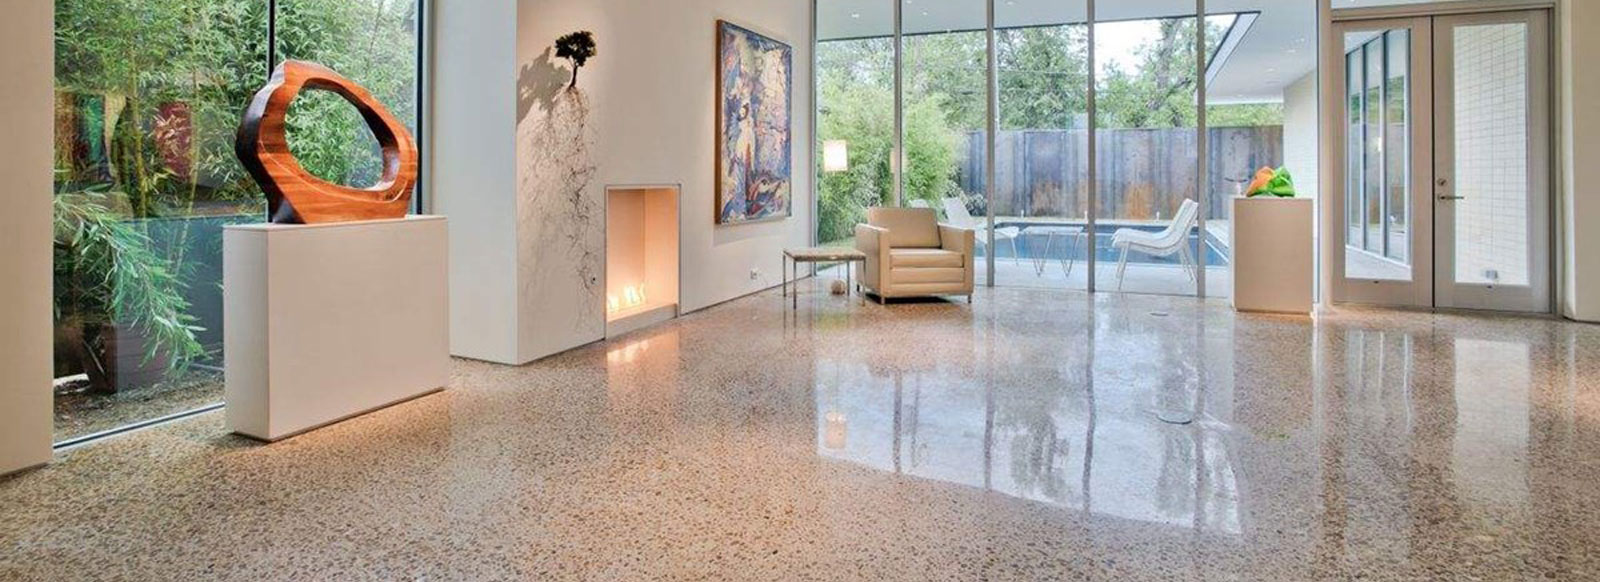 For Professional Polishing Of Floors Contact Concrete Polishing In Melbourne